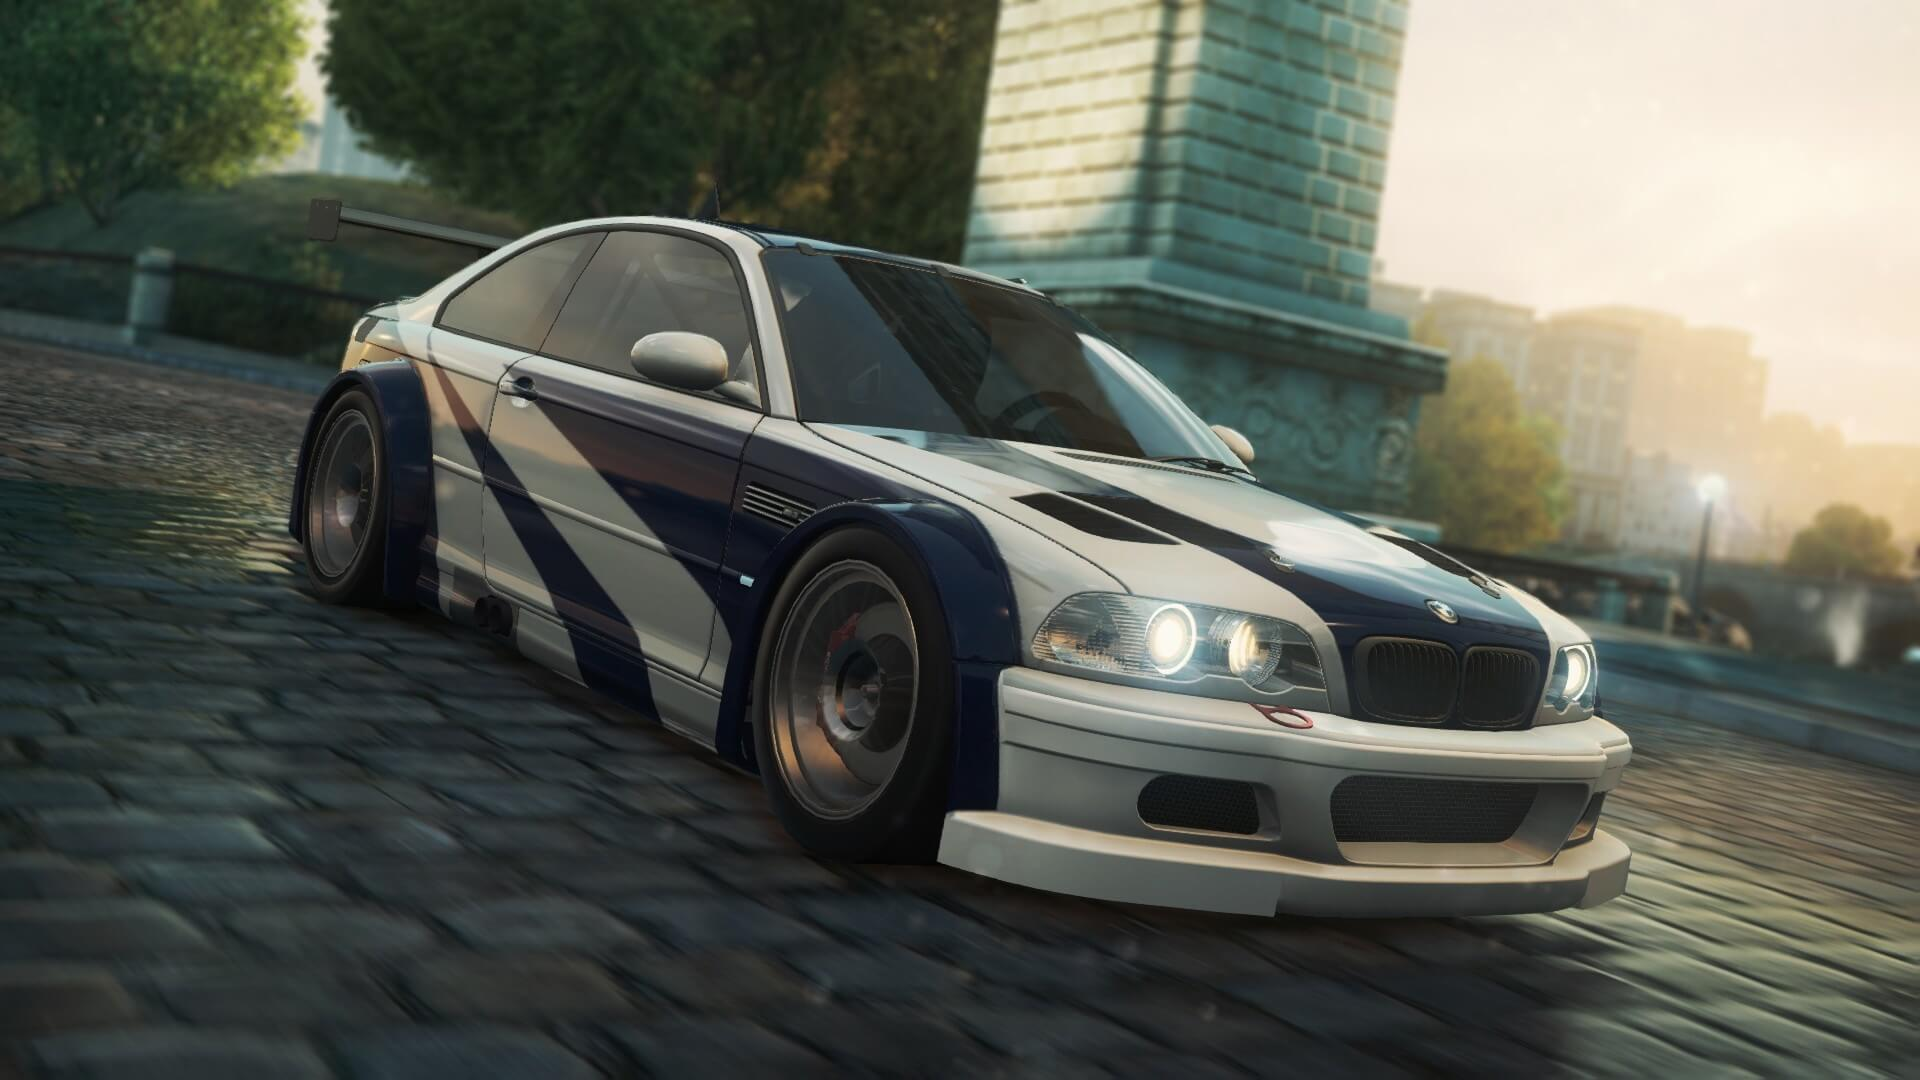 Need for speed most wanted 2005 download iso   Need for